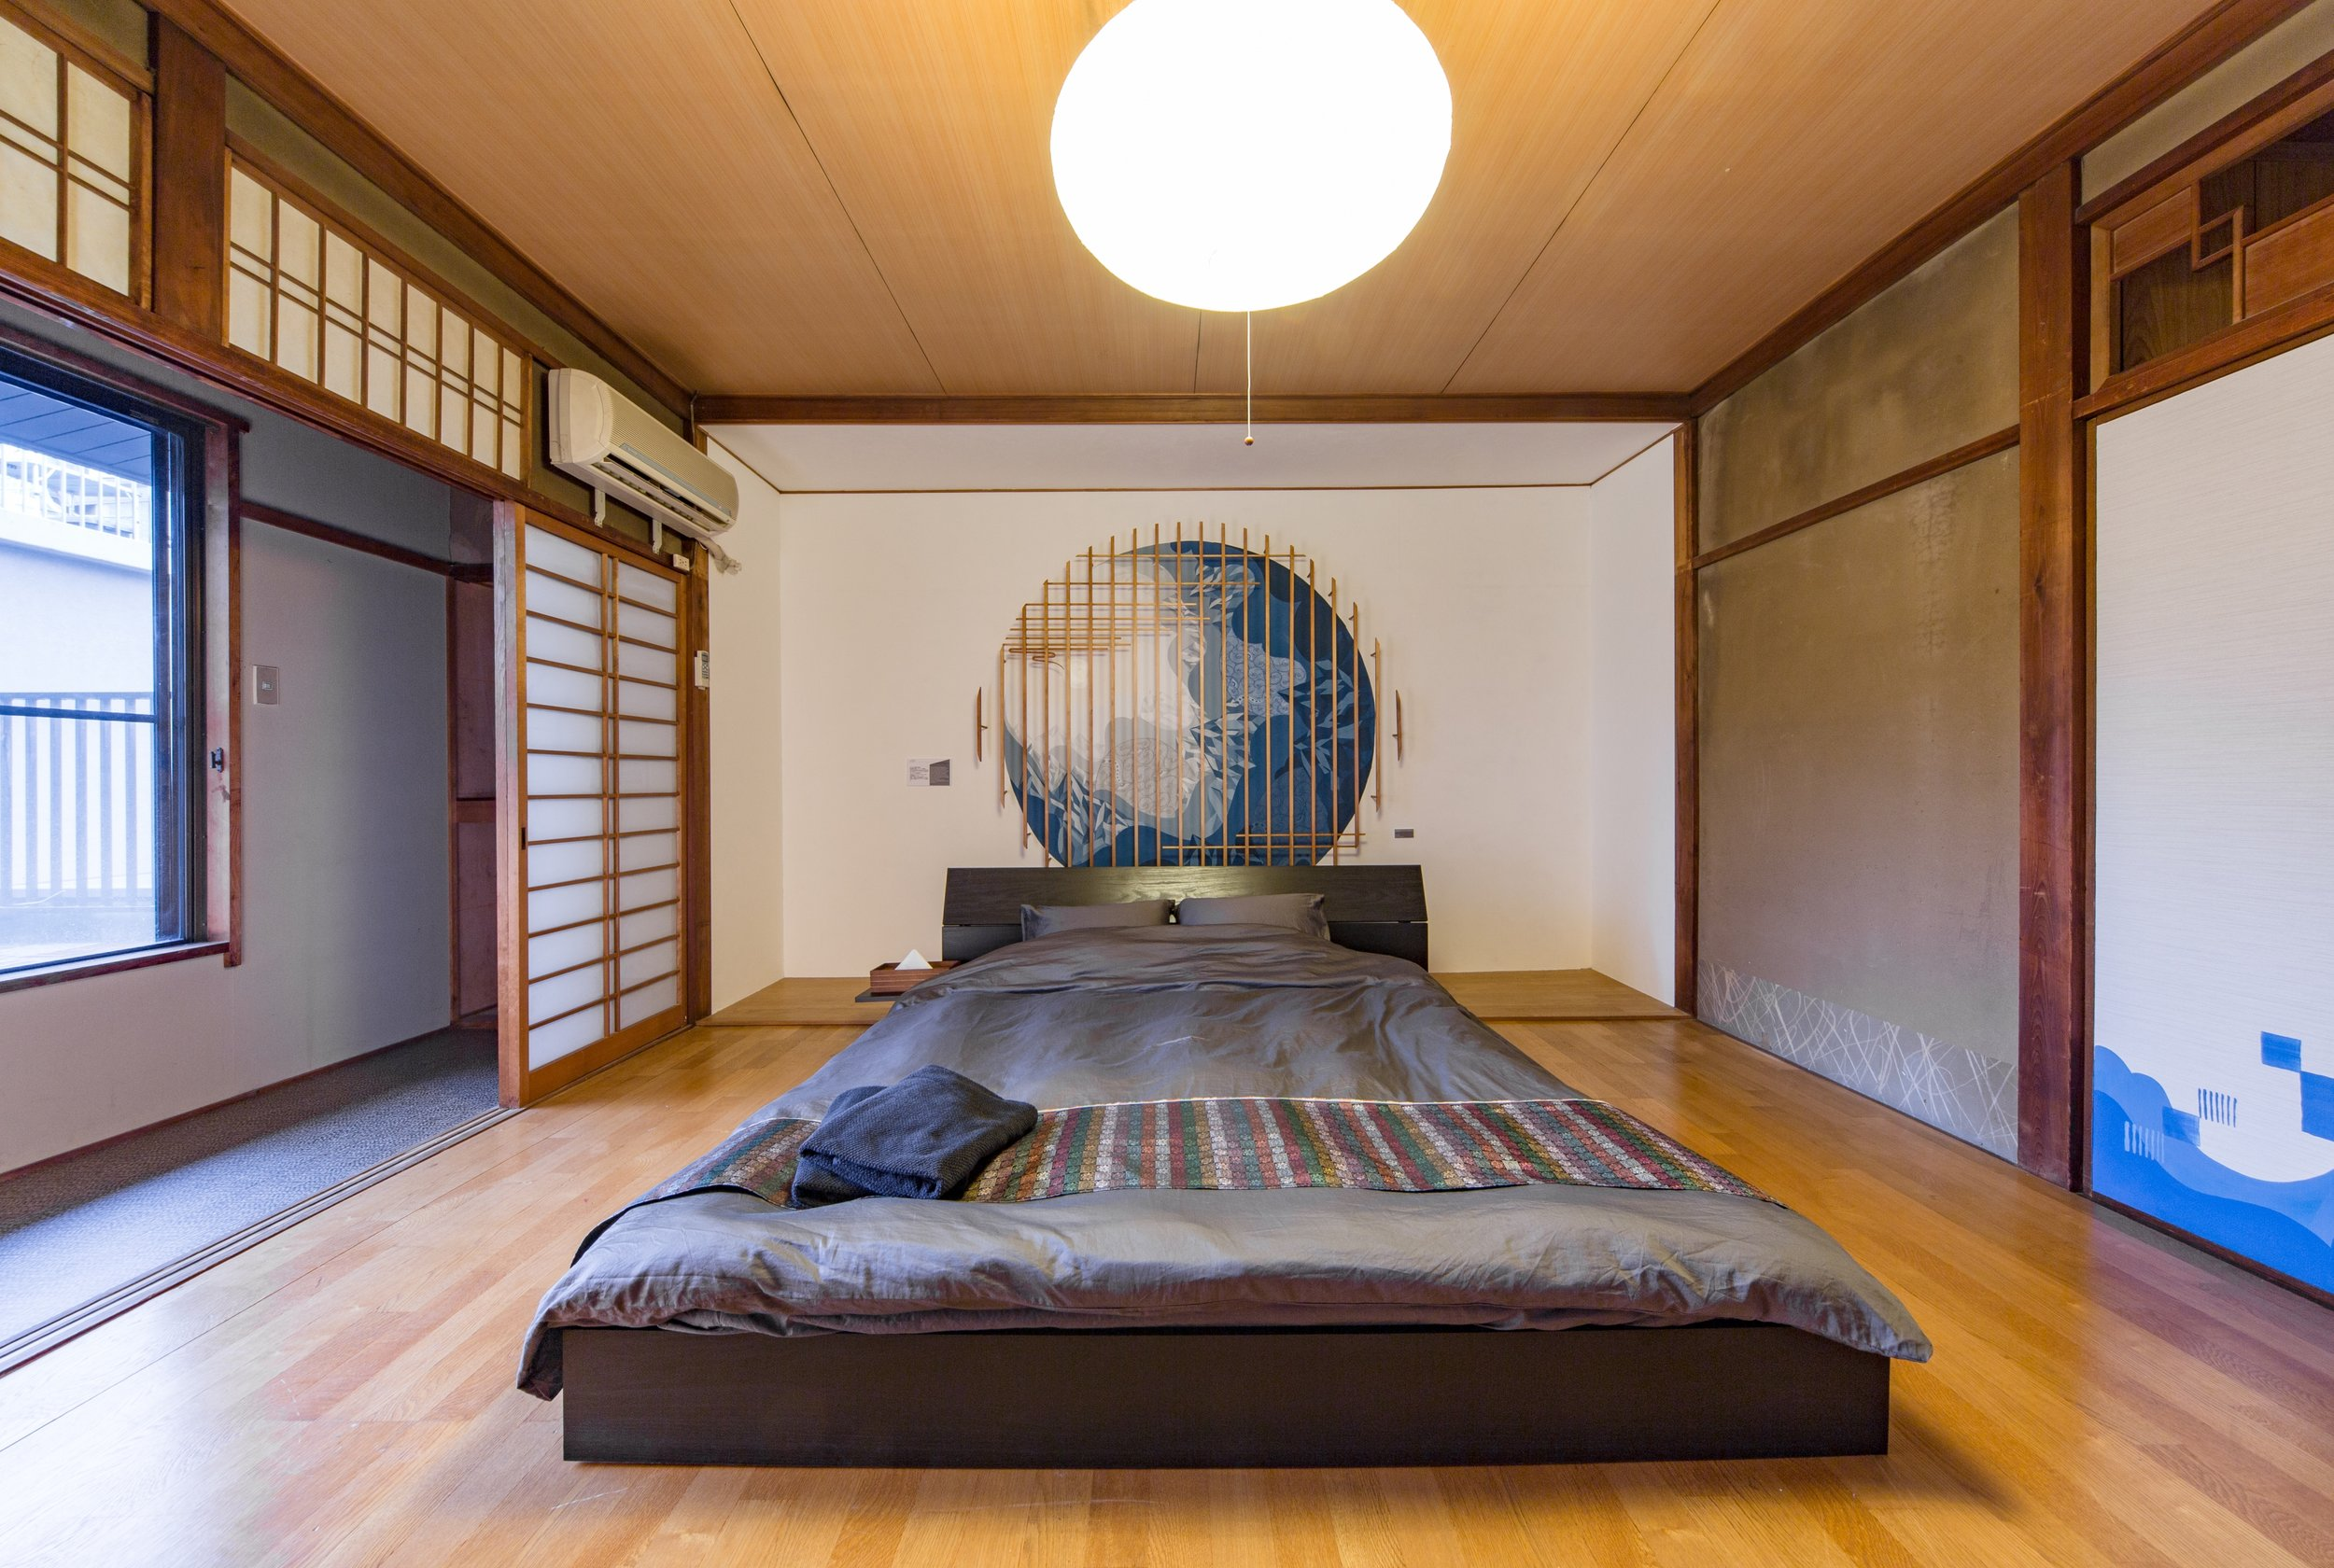 BnA MACHIYA Kyoto - Open: August 2015Operation: 直営